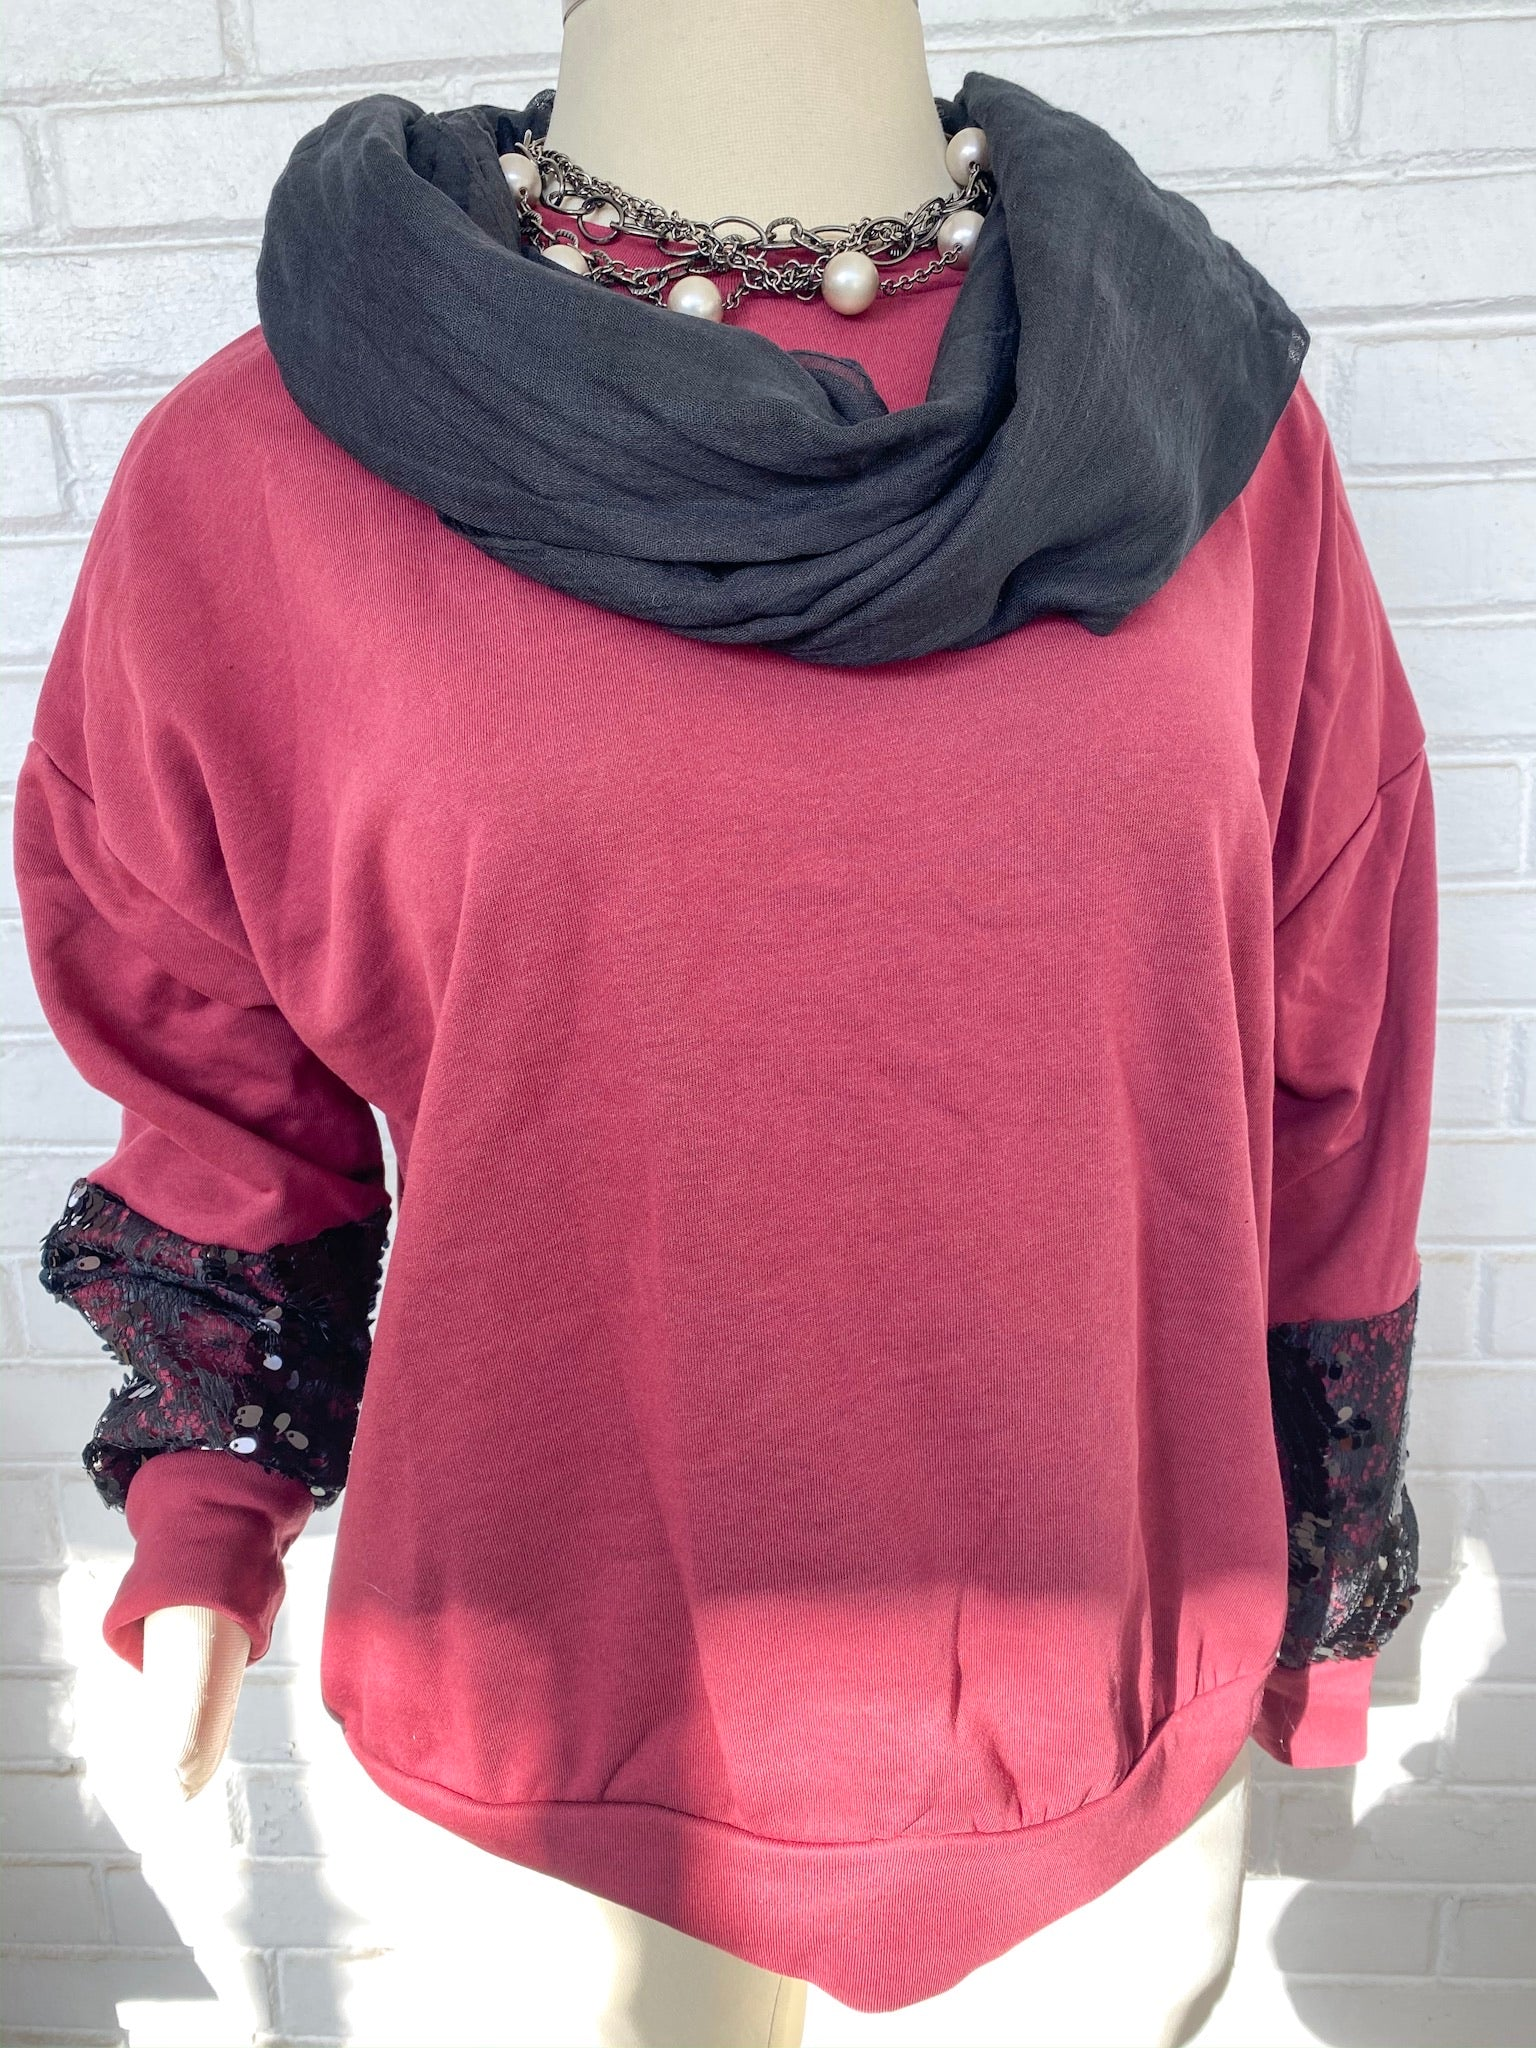 Women's Sequins & Lace Sweater | Women's Burgundy Sweater | Women's Comfy Sweater